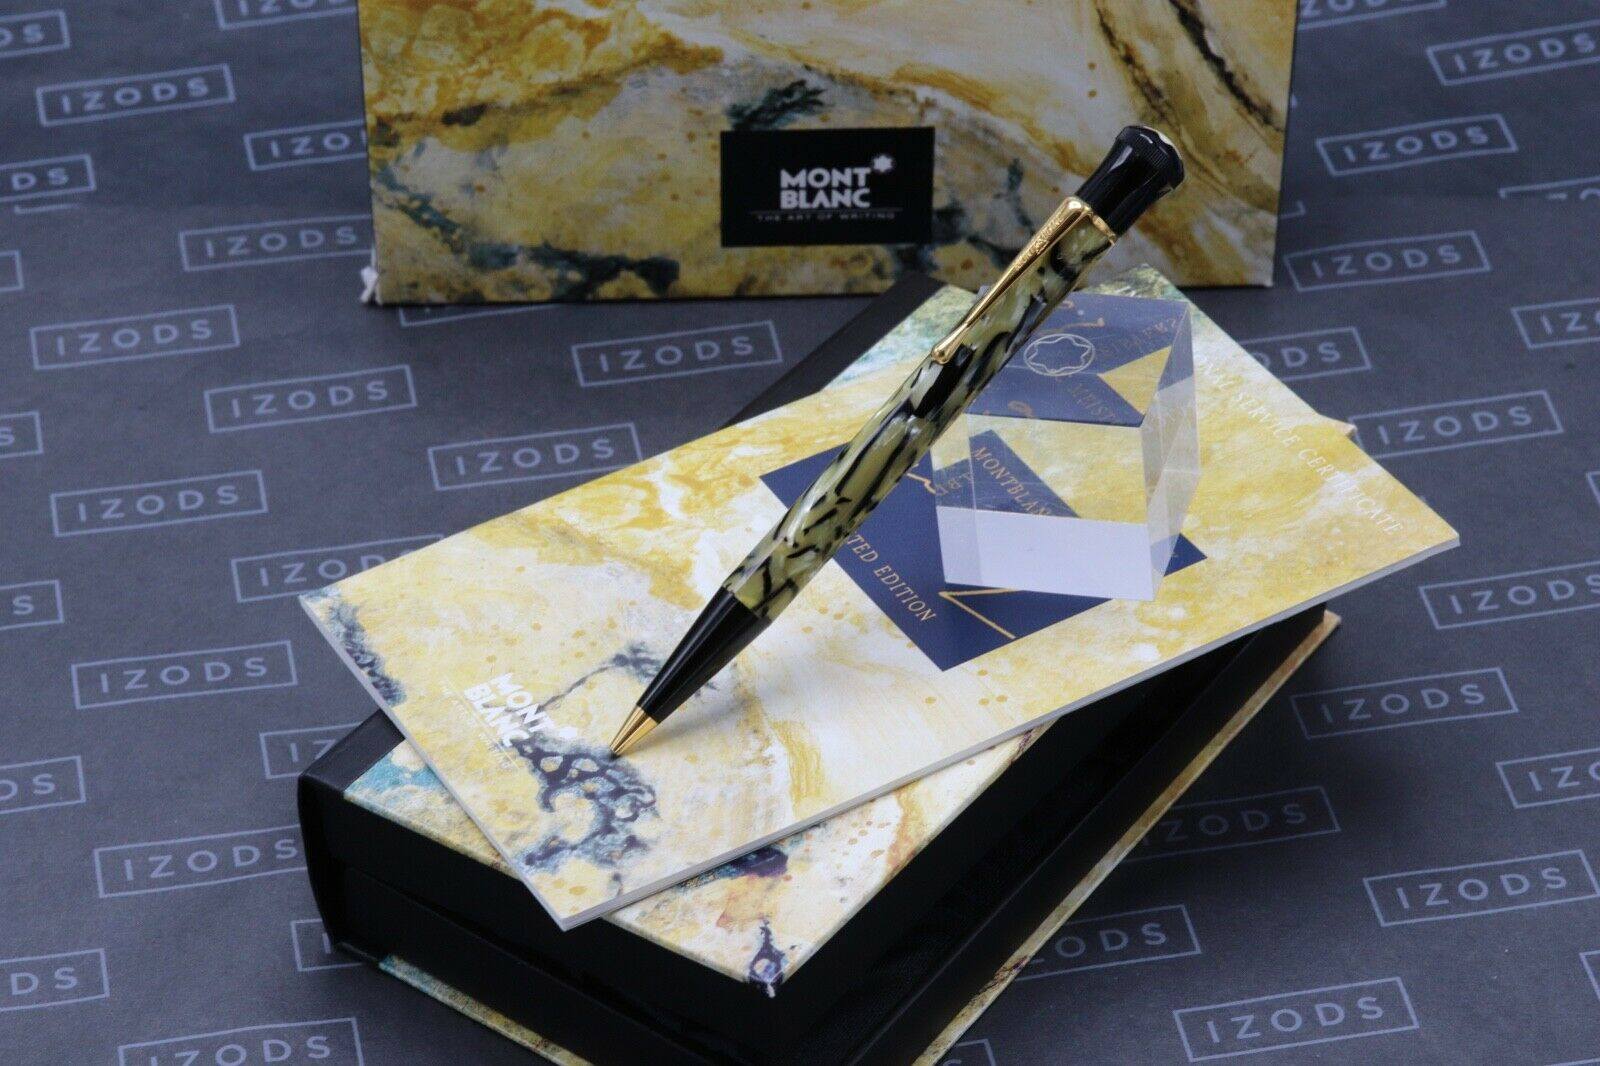 Montblanc Oscar Wilde Writers Limited Edition Mechanical Pencil